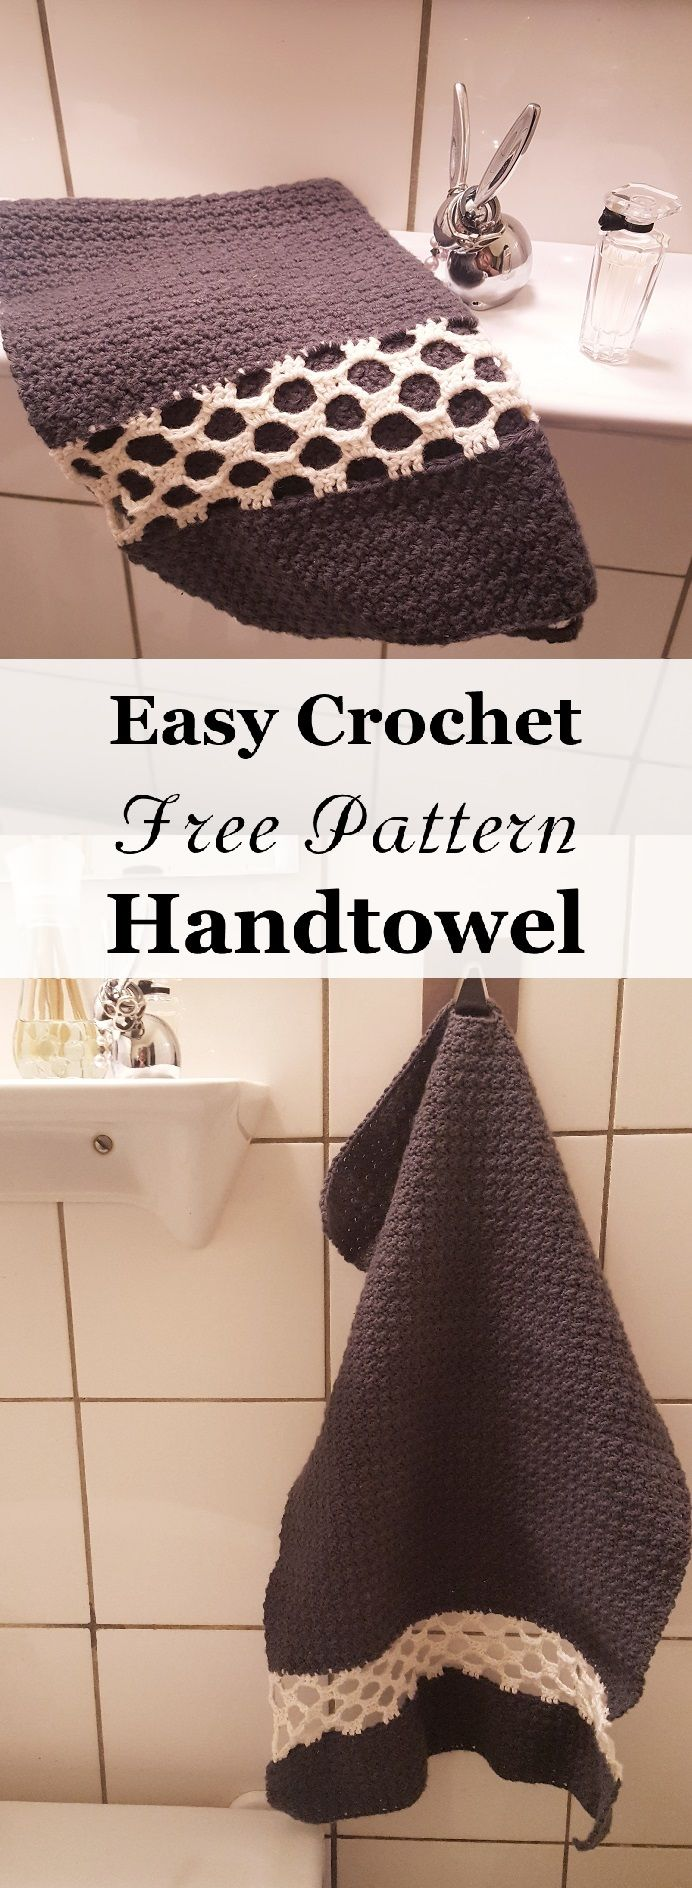 [FREE PATTERN] Lovely crochet handtowel with simple mesh.